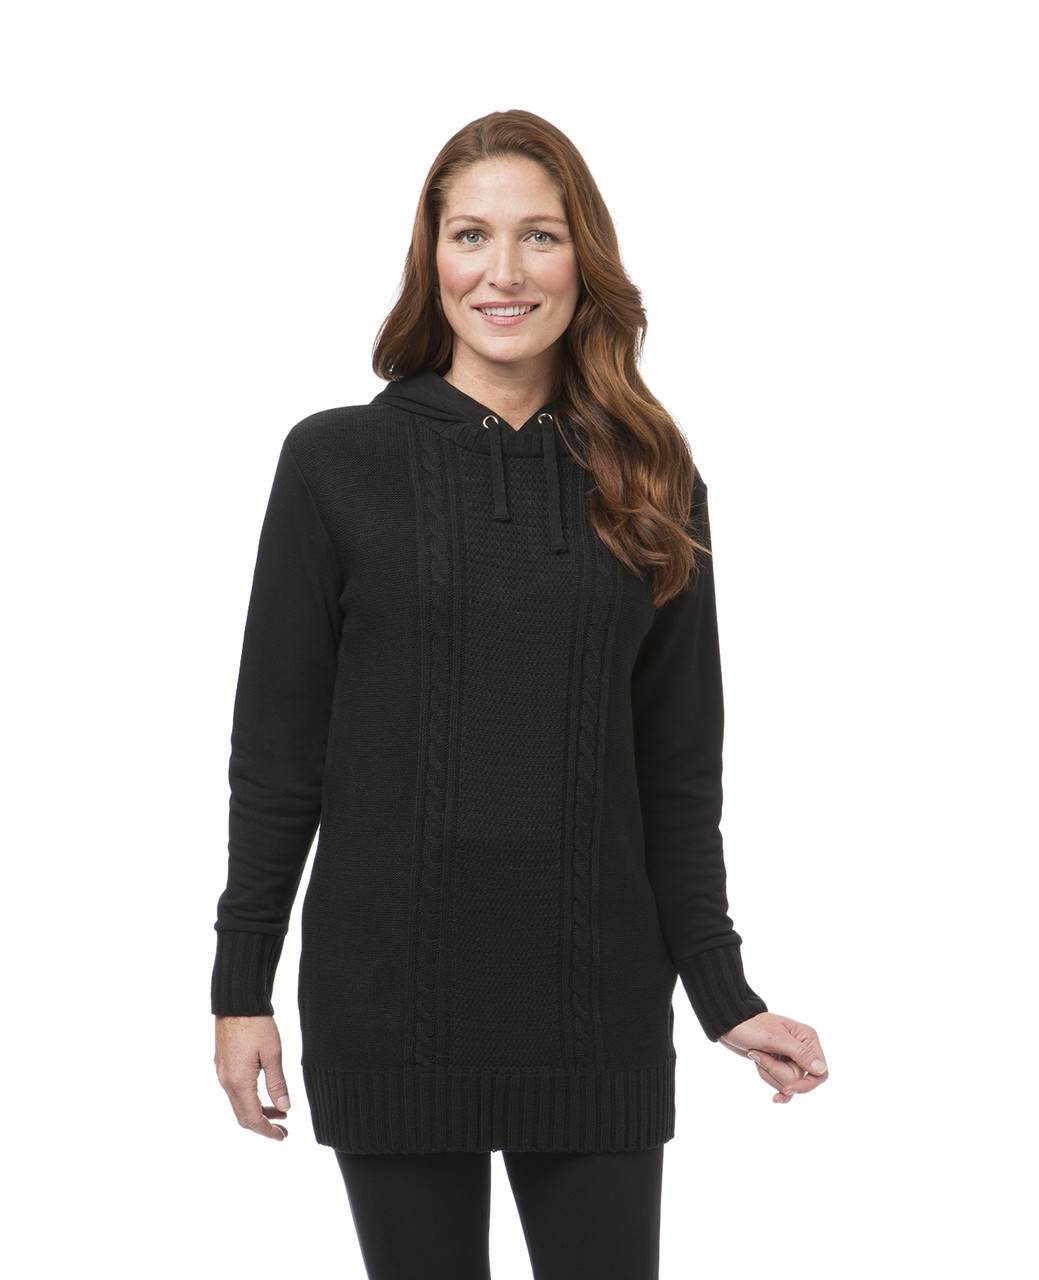 d5f1e189ca4 Women's Black Fleece Tunic Sweater | Northern Reflections